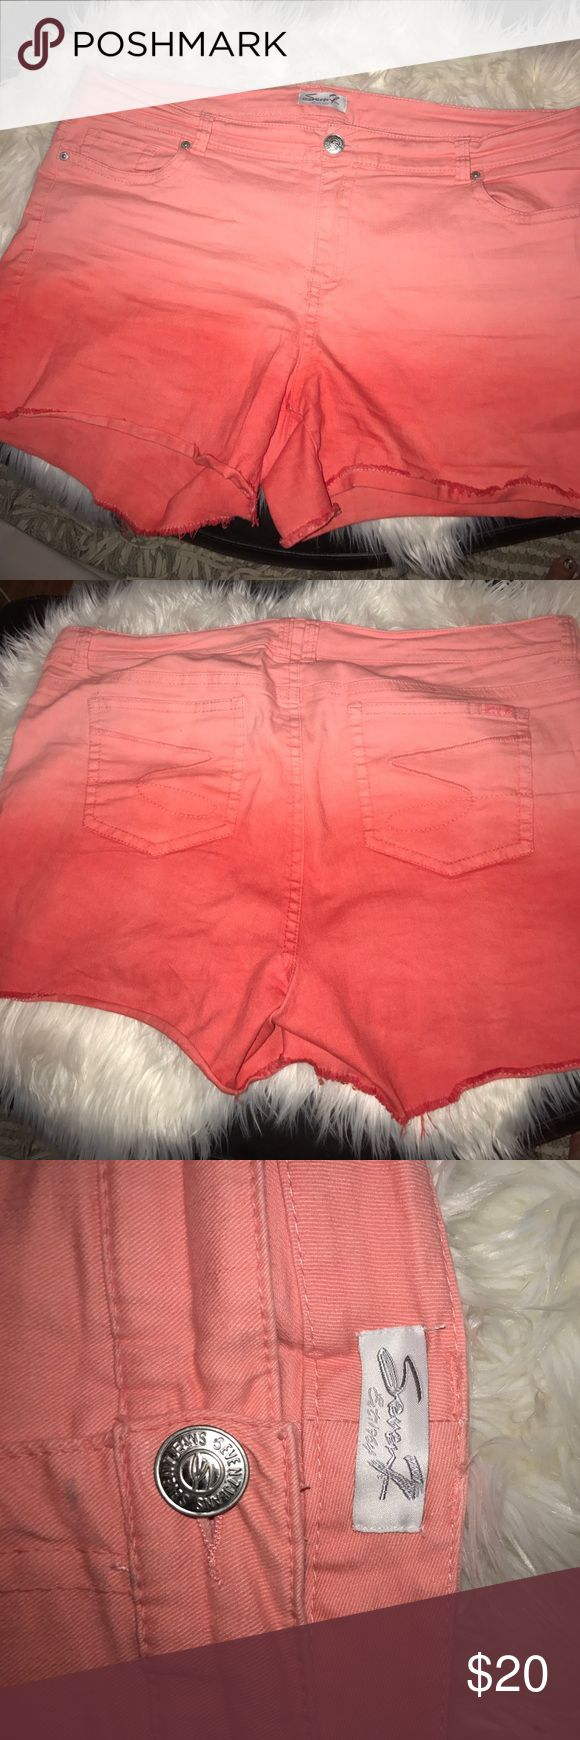 Women's shorts ~seven by lane Bryant Gorgeous ombré women's plus size shorts in a beautiful orange color ..size 22 .. lane Bryant .. seven jean shorts ..👸🏻 Seven7 Shorts Jean Shorts